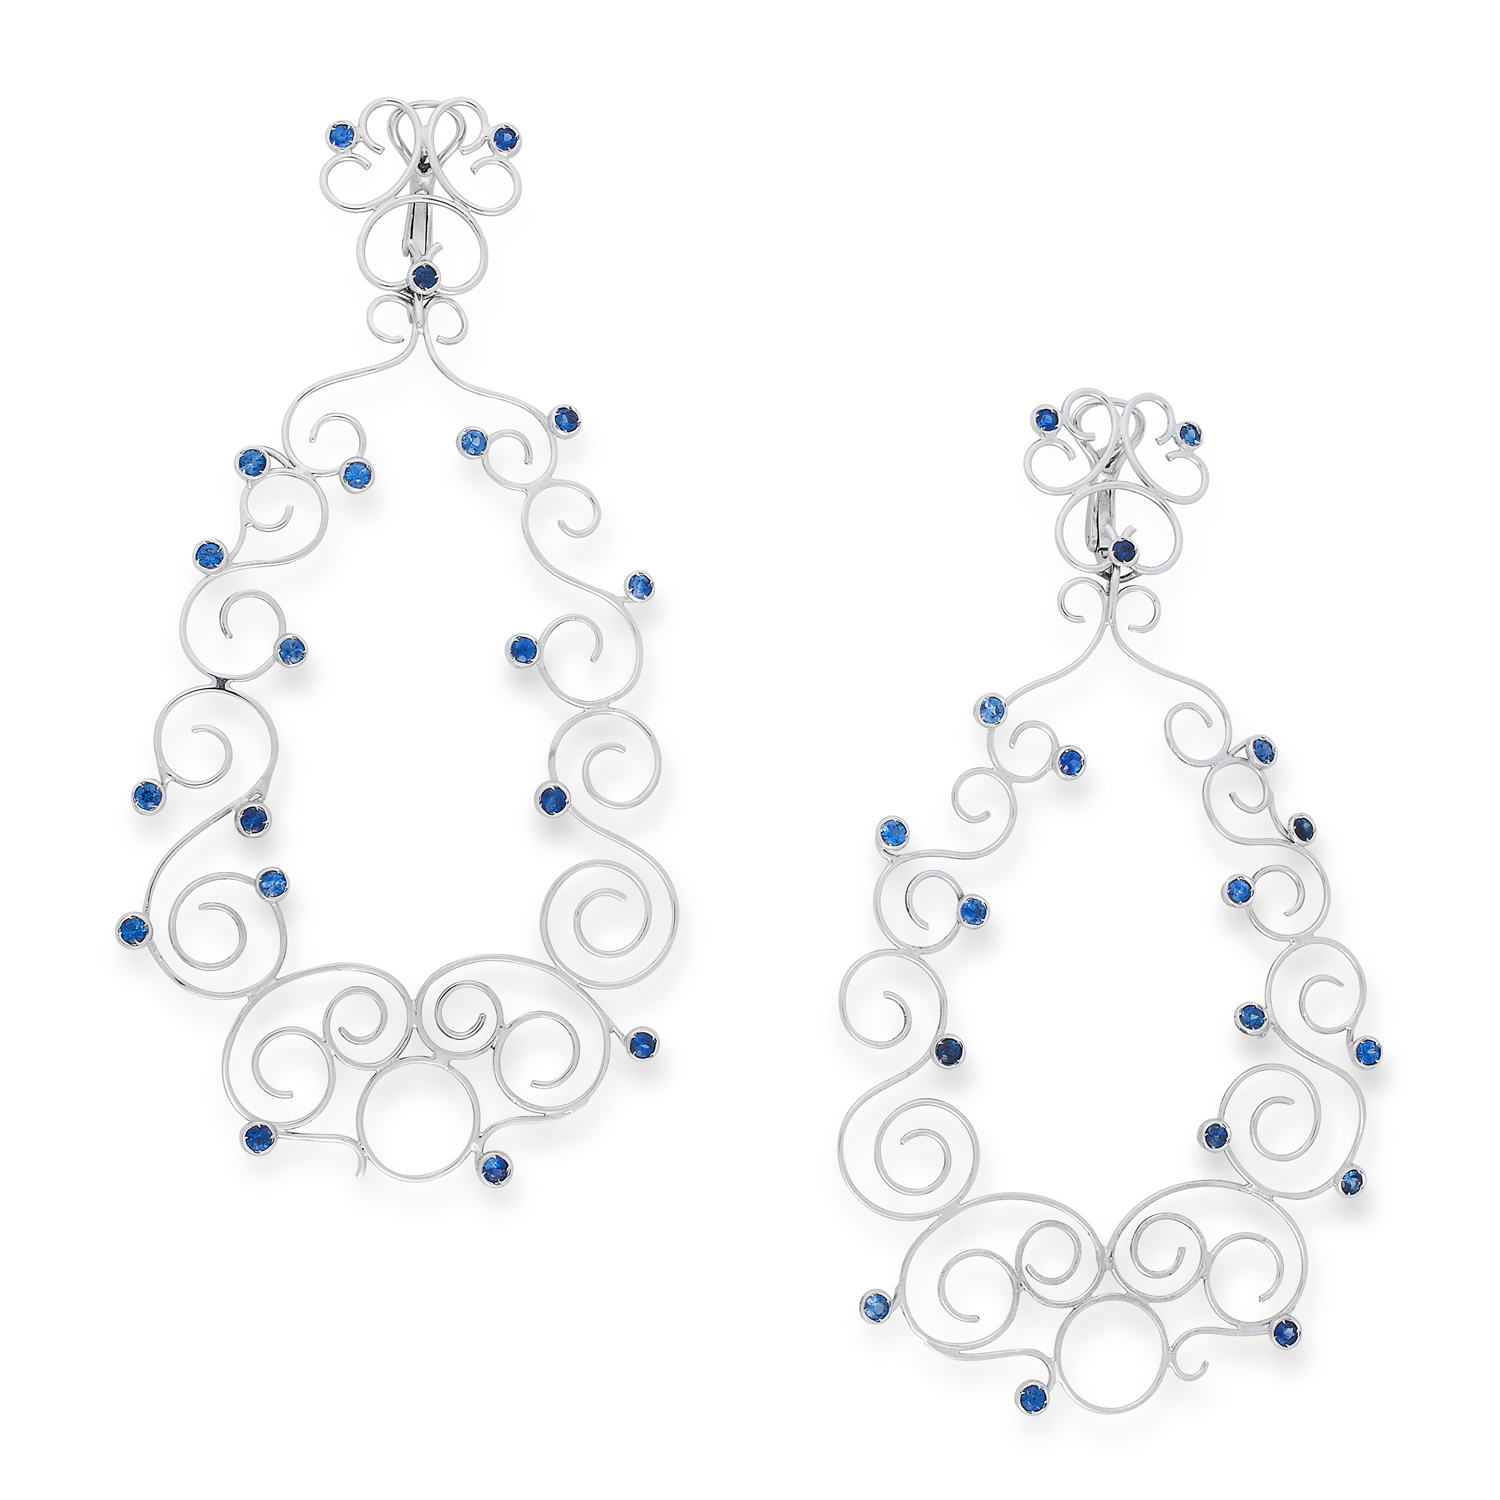 A PAIR OF SAPPHIRE EARRINGS in open framework design comprising of scrolls, set with round cut